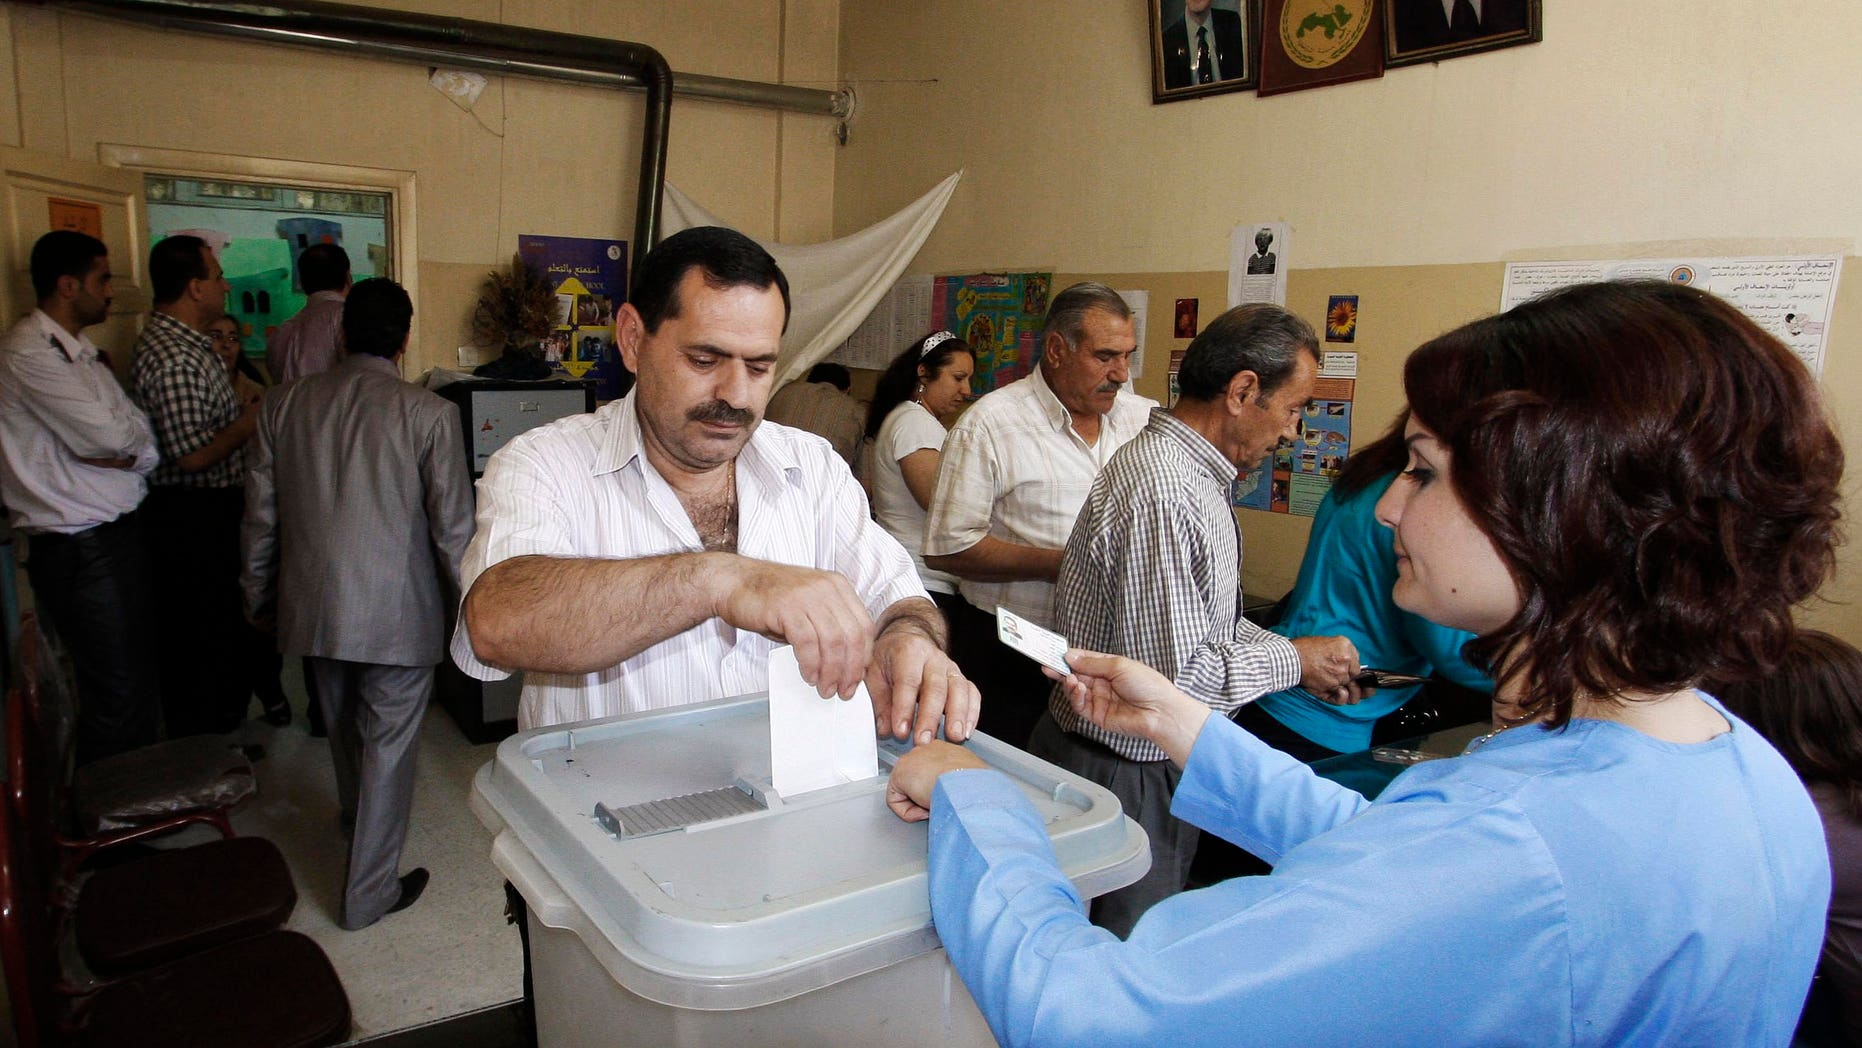 May 7, 2012: In this photo taken during a government-organized tour, a Syrian man casts his vote at a polling station during the parliamentary elections, in Damascus, Syria.